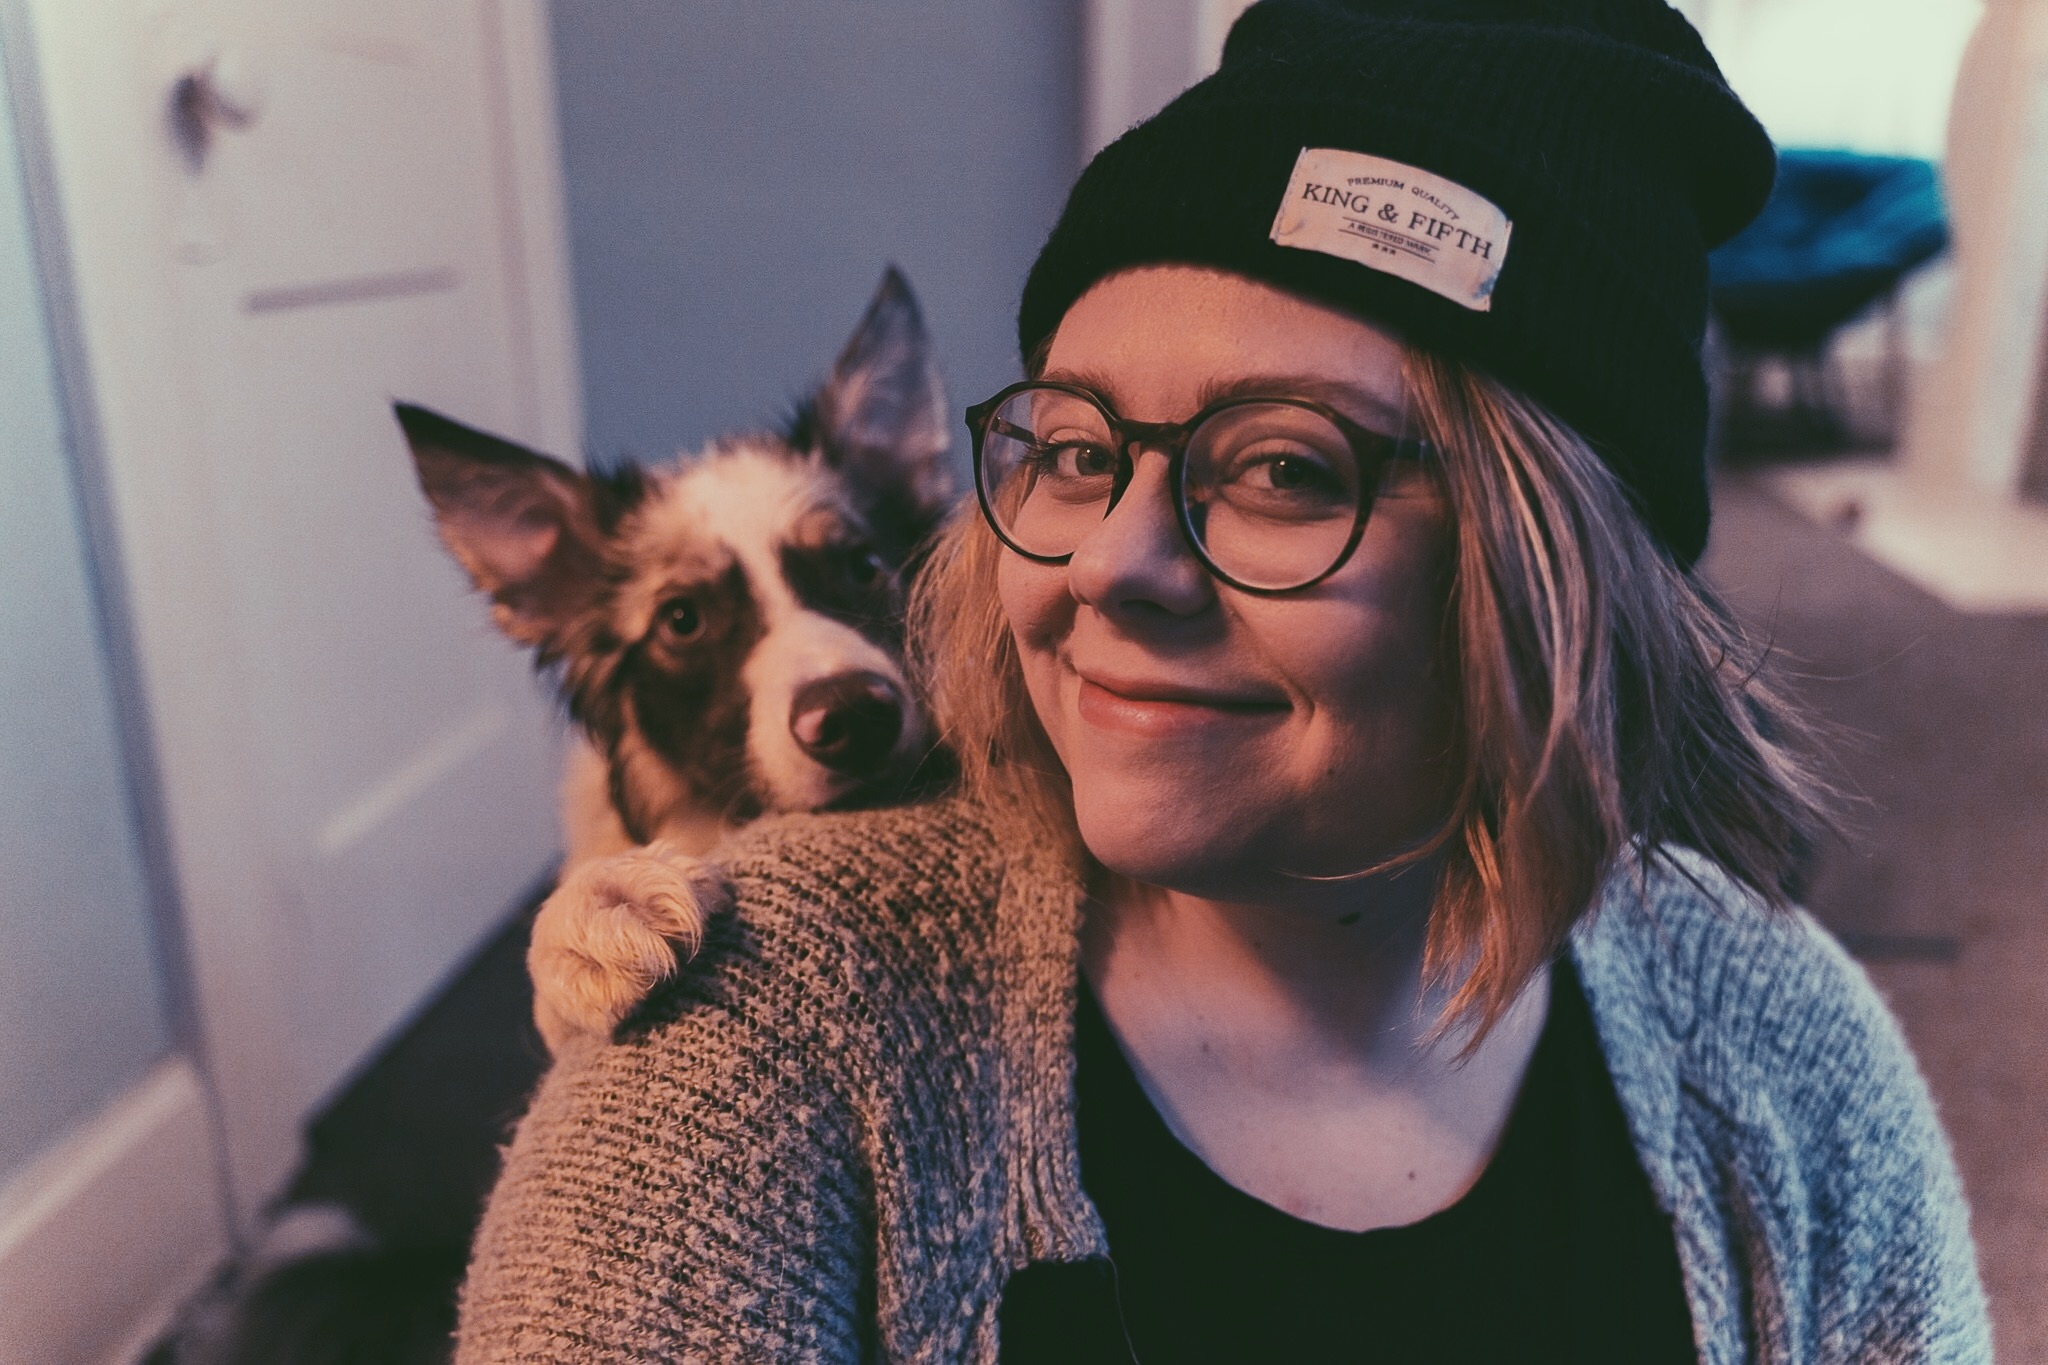 A photo of me and my best friend.